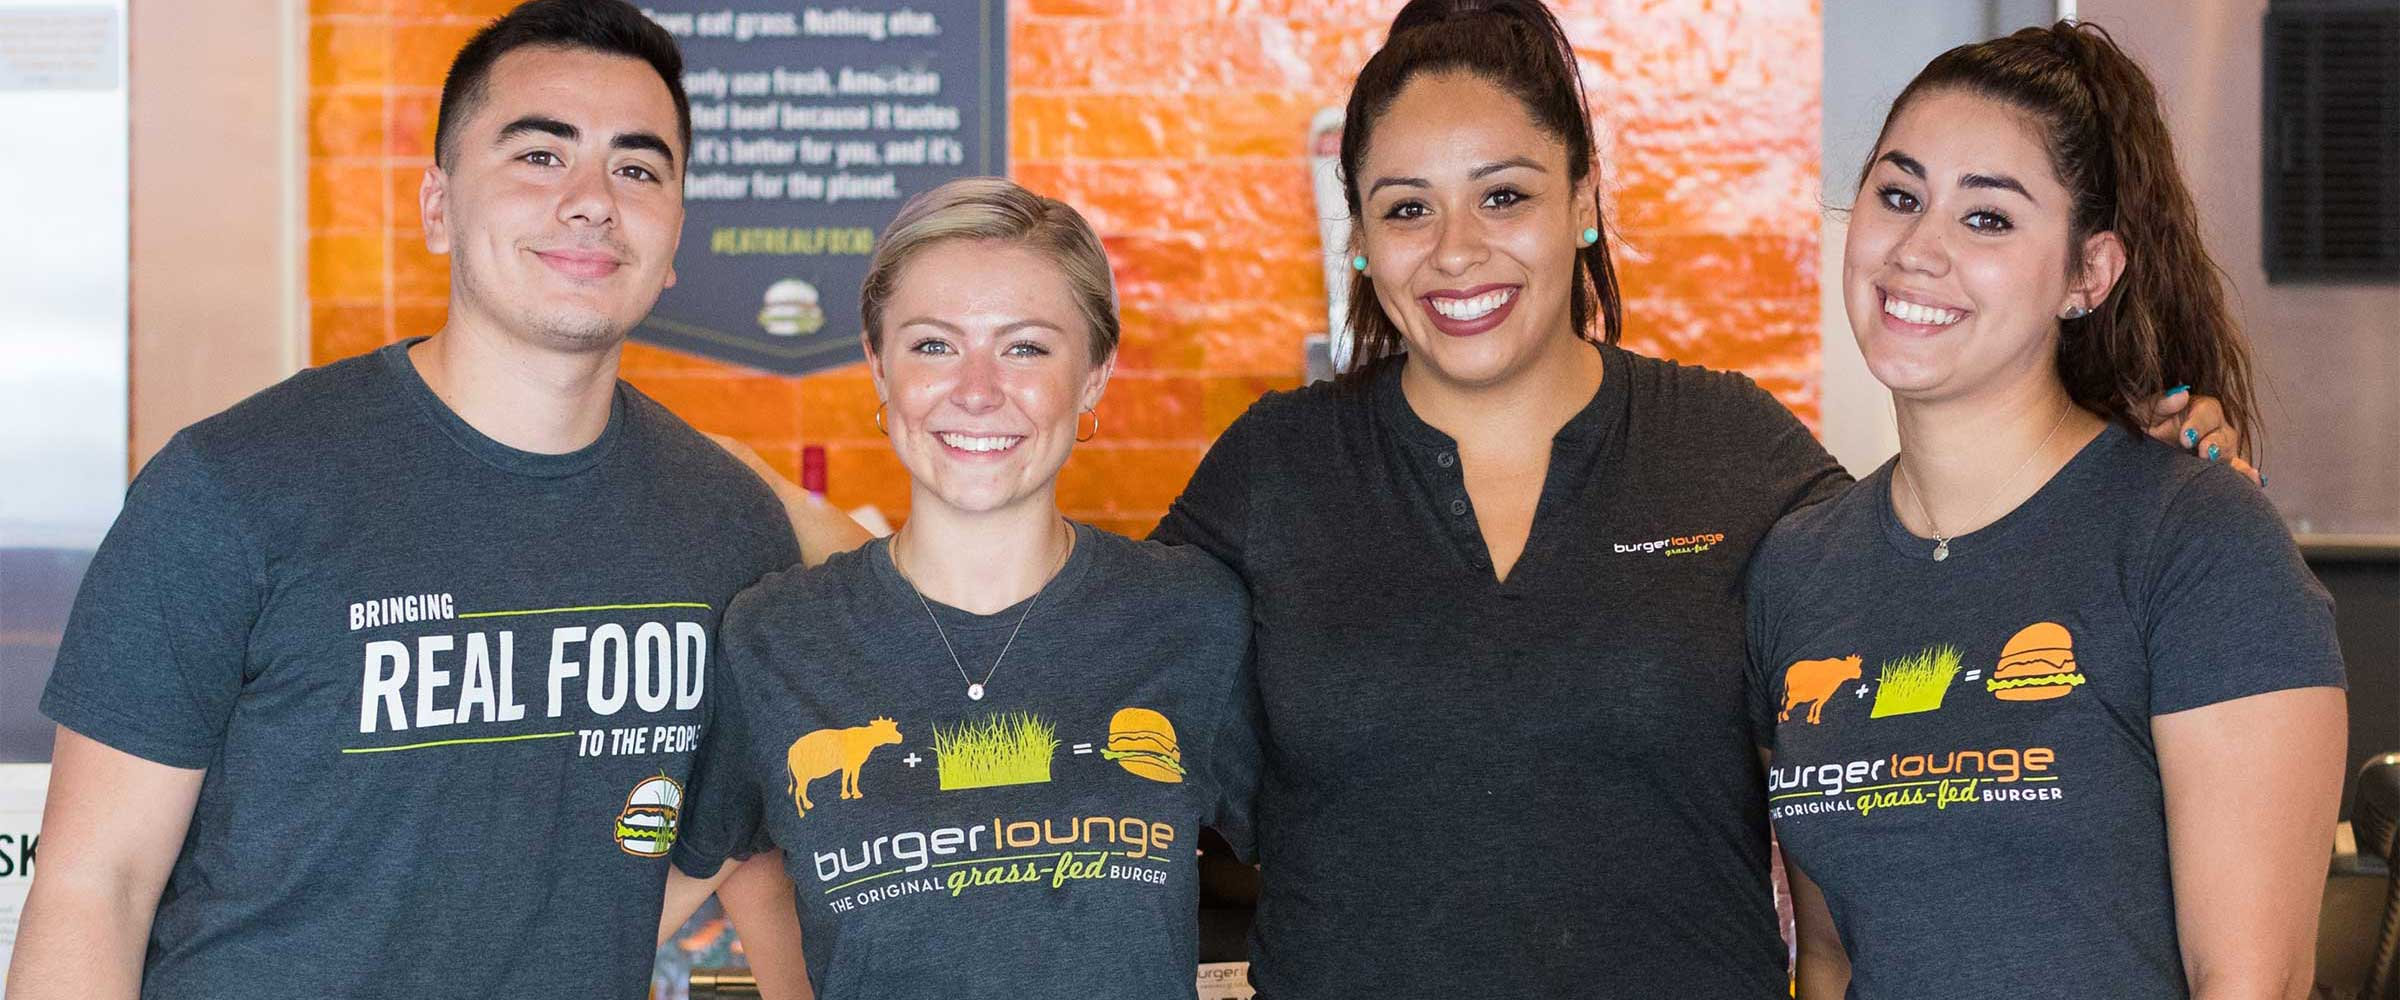 Work Where the Grass is Greener - Careers at Burger Lounge